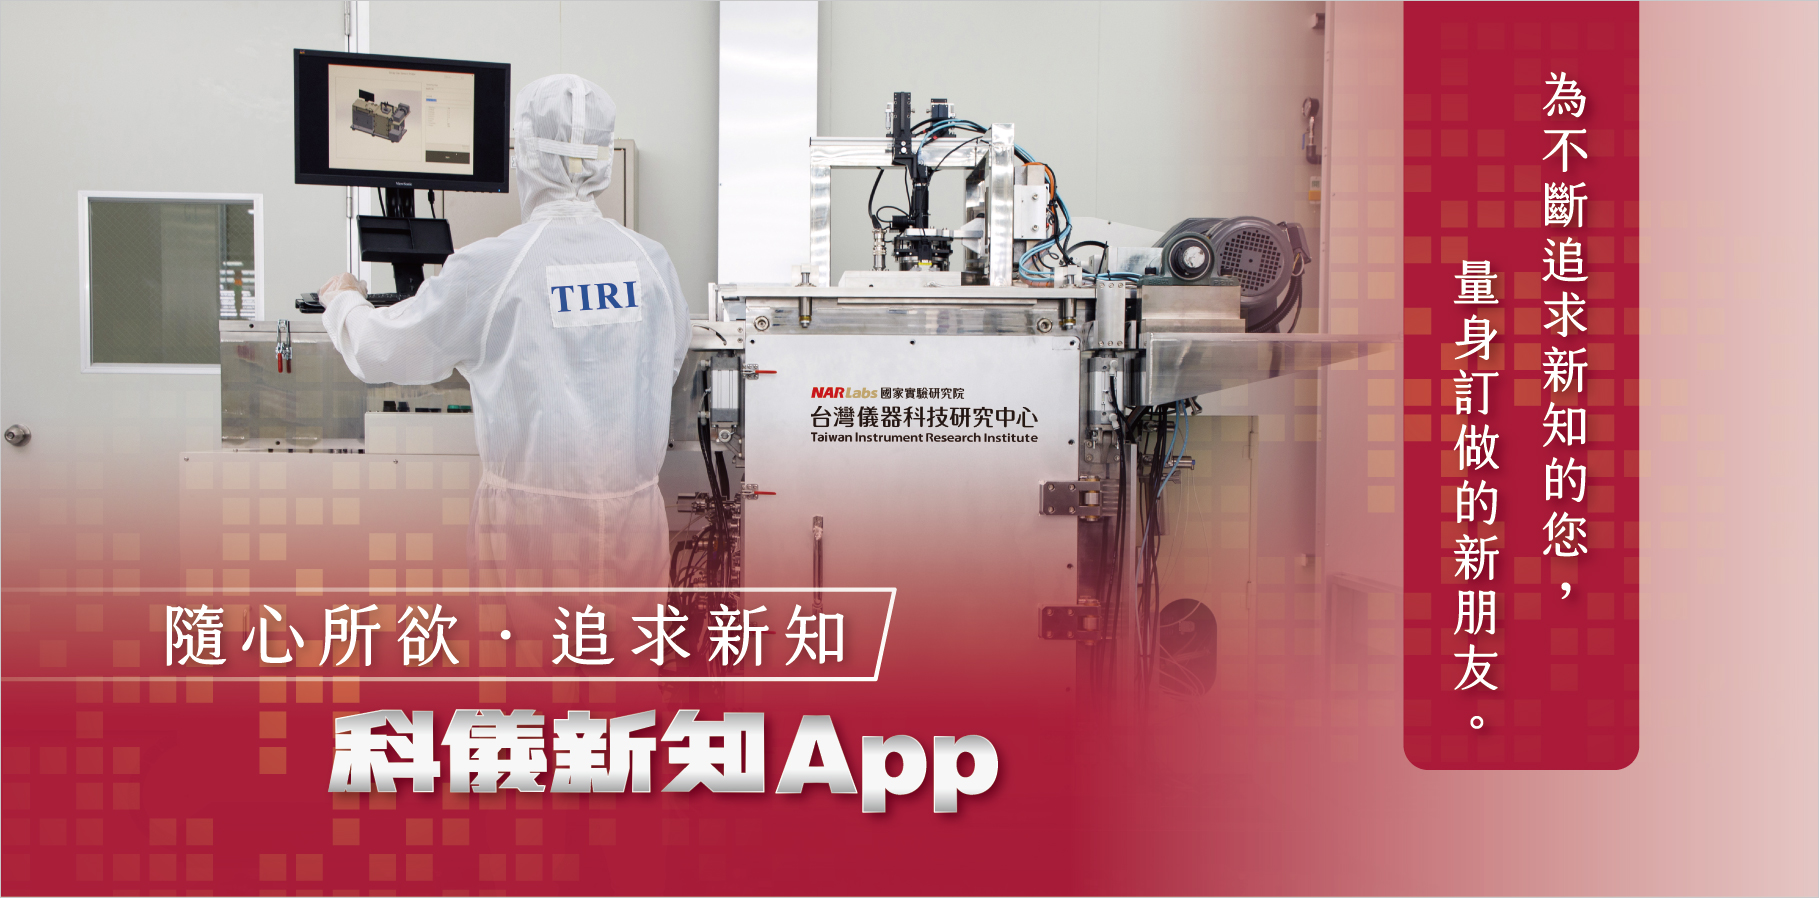 """TIRI launches the journal """"Instruments Today"""" app for learning about scientific instruments on the go."""